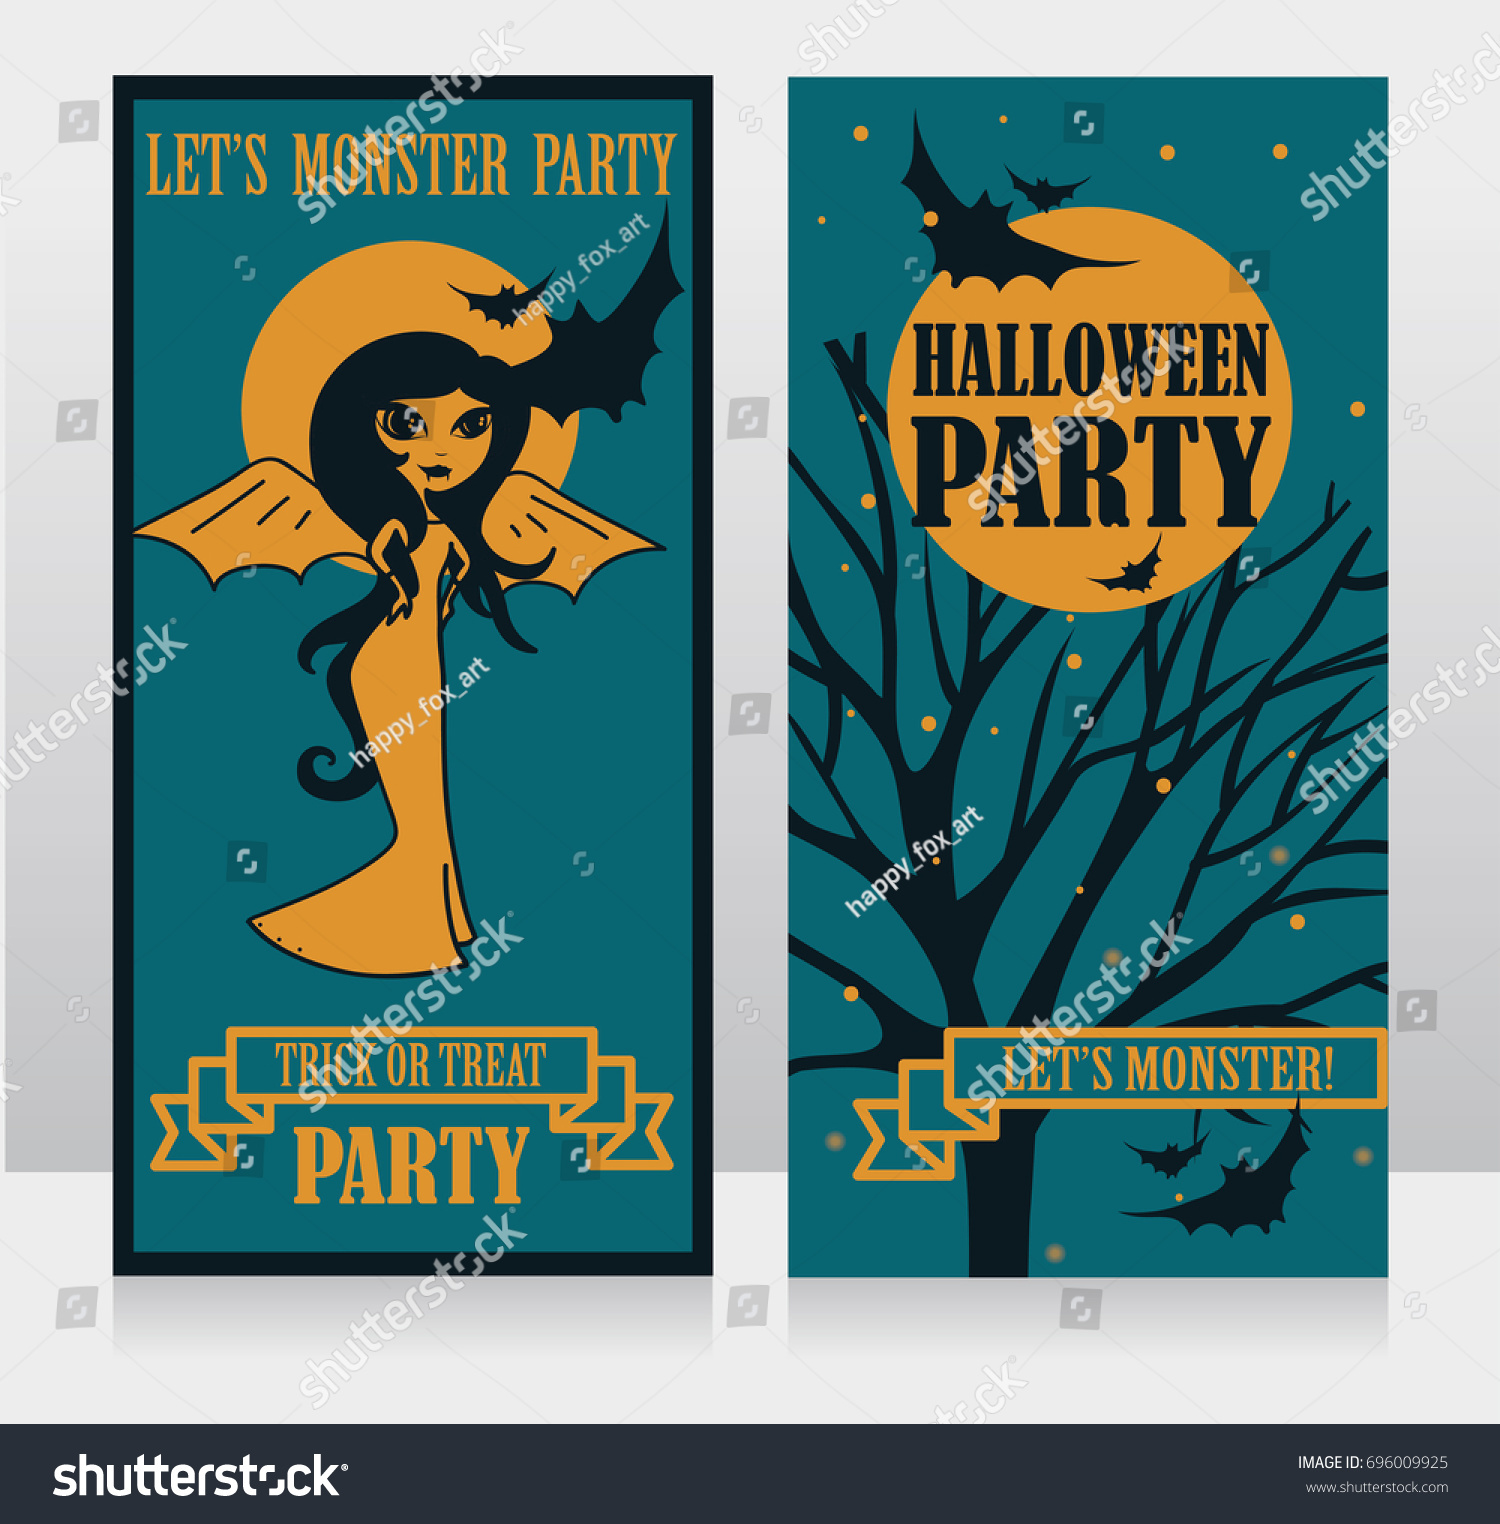 Template Halloween Party Invitations Doodle Lady Stock Vector ...